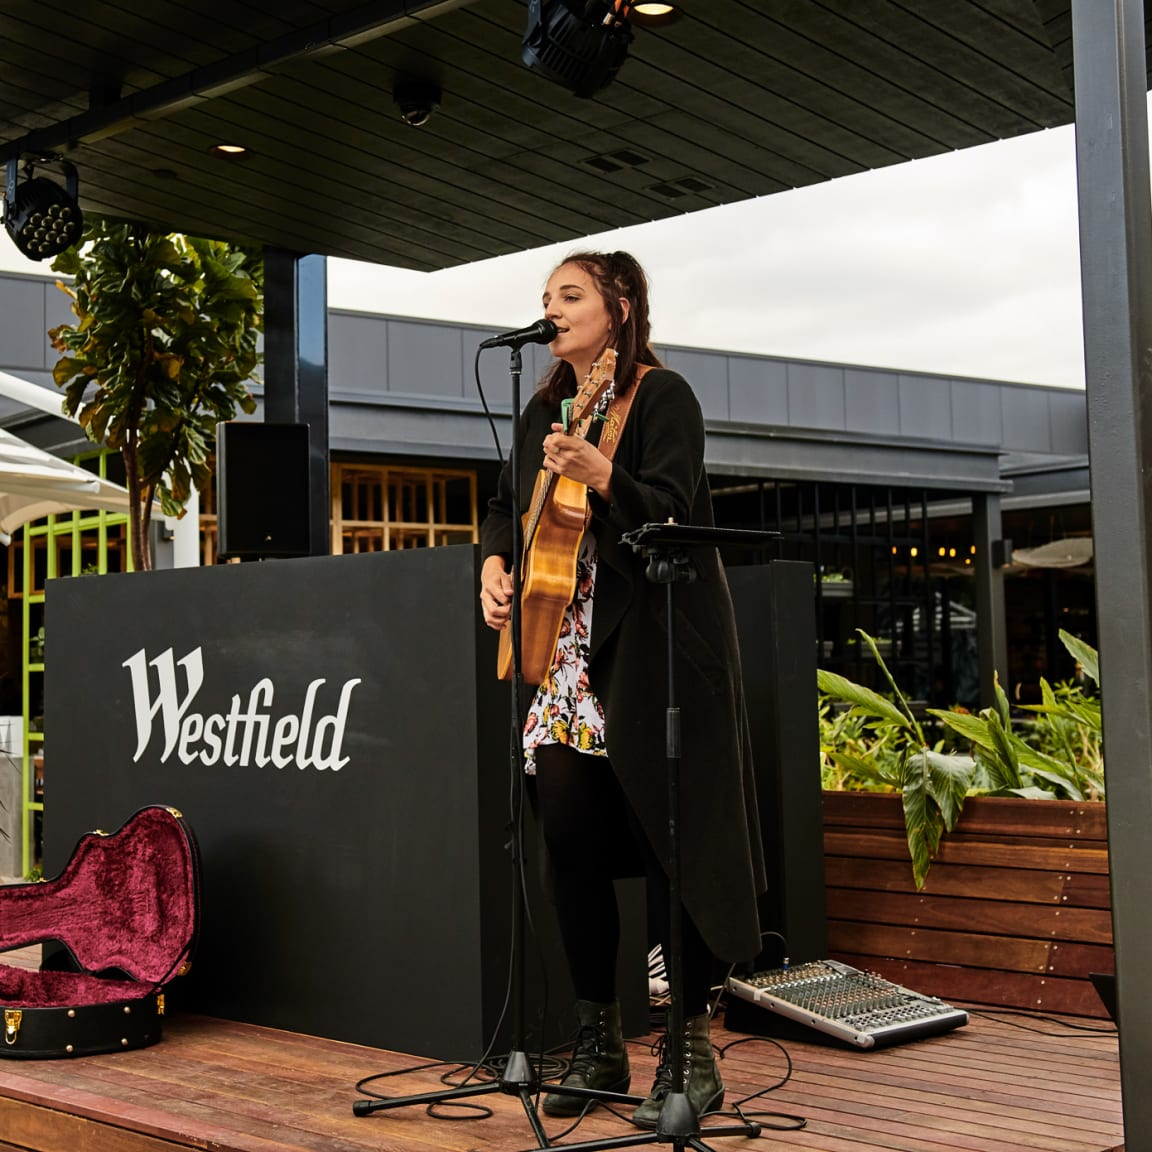 Enjoy live music at Westfield Carousel